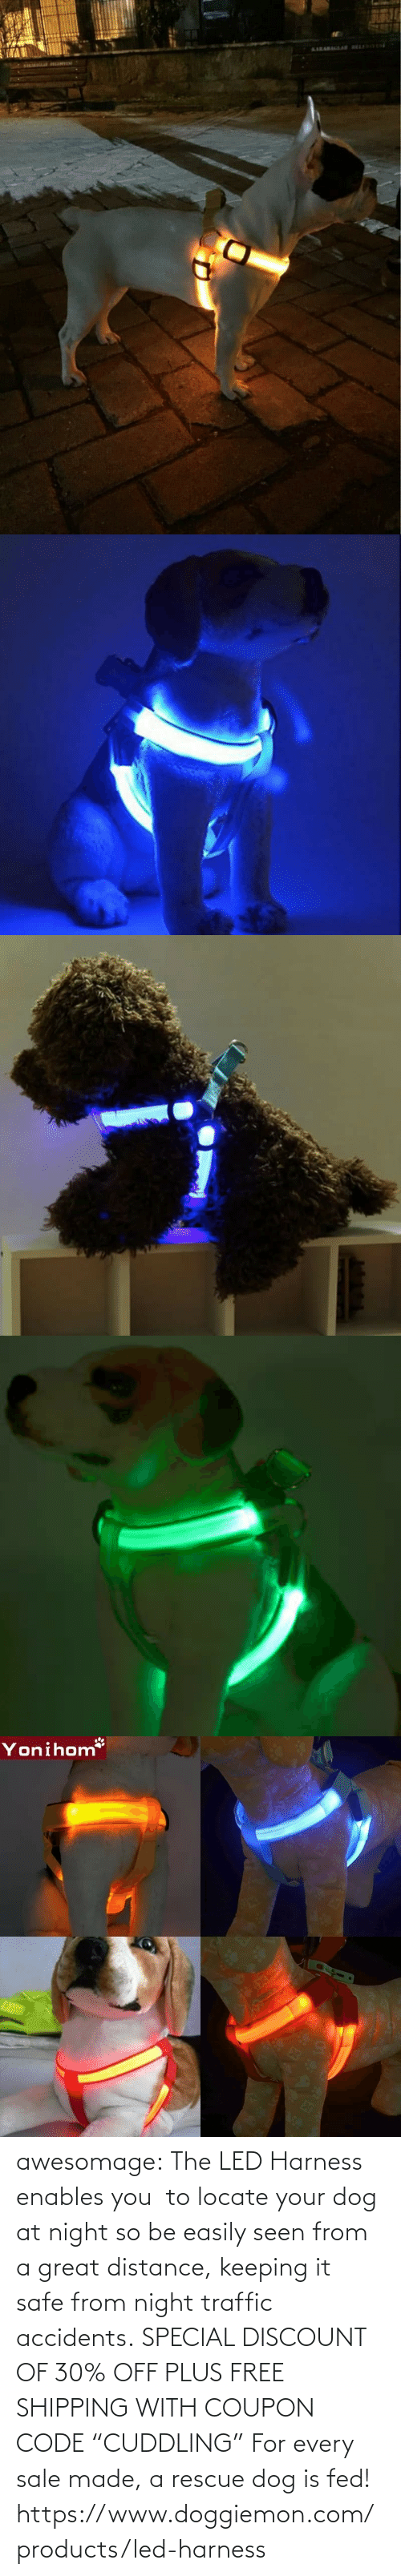 "A Great: A1KAMAGLAR RELERVS  BILIRALLAN JOI   Yonihom  E3  X1  EX awesomage:   The LED Harness enables you  to locate your dog at night so be easily seen from a great distance, keeping it safe from night traffic accidents. SPECIAL DISCOUNT OF 30% OFF PLUS FREE SHIPPING WITH COUPON CODE ""CUDDLING"" For every sale made, a rescue dog is fed!   https://www.doggiemon.com/products/led-harness"